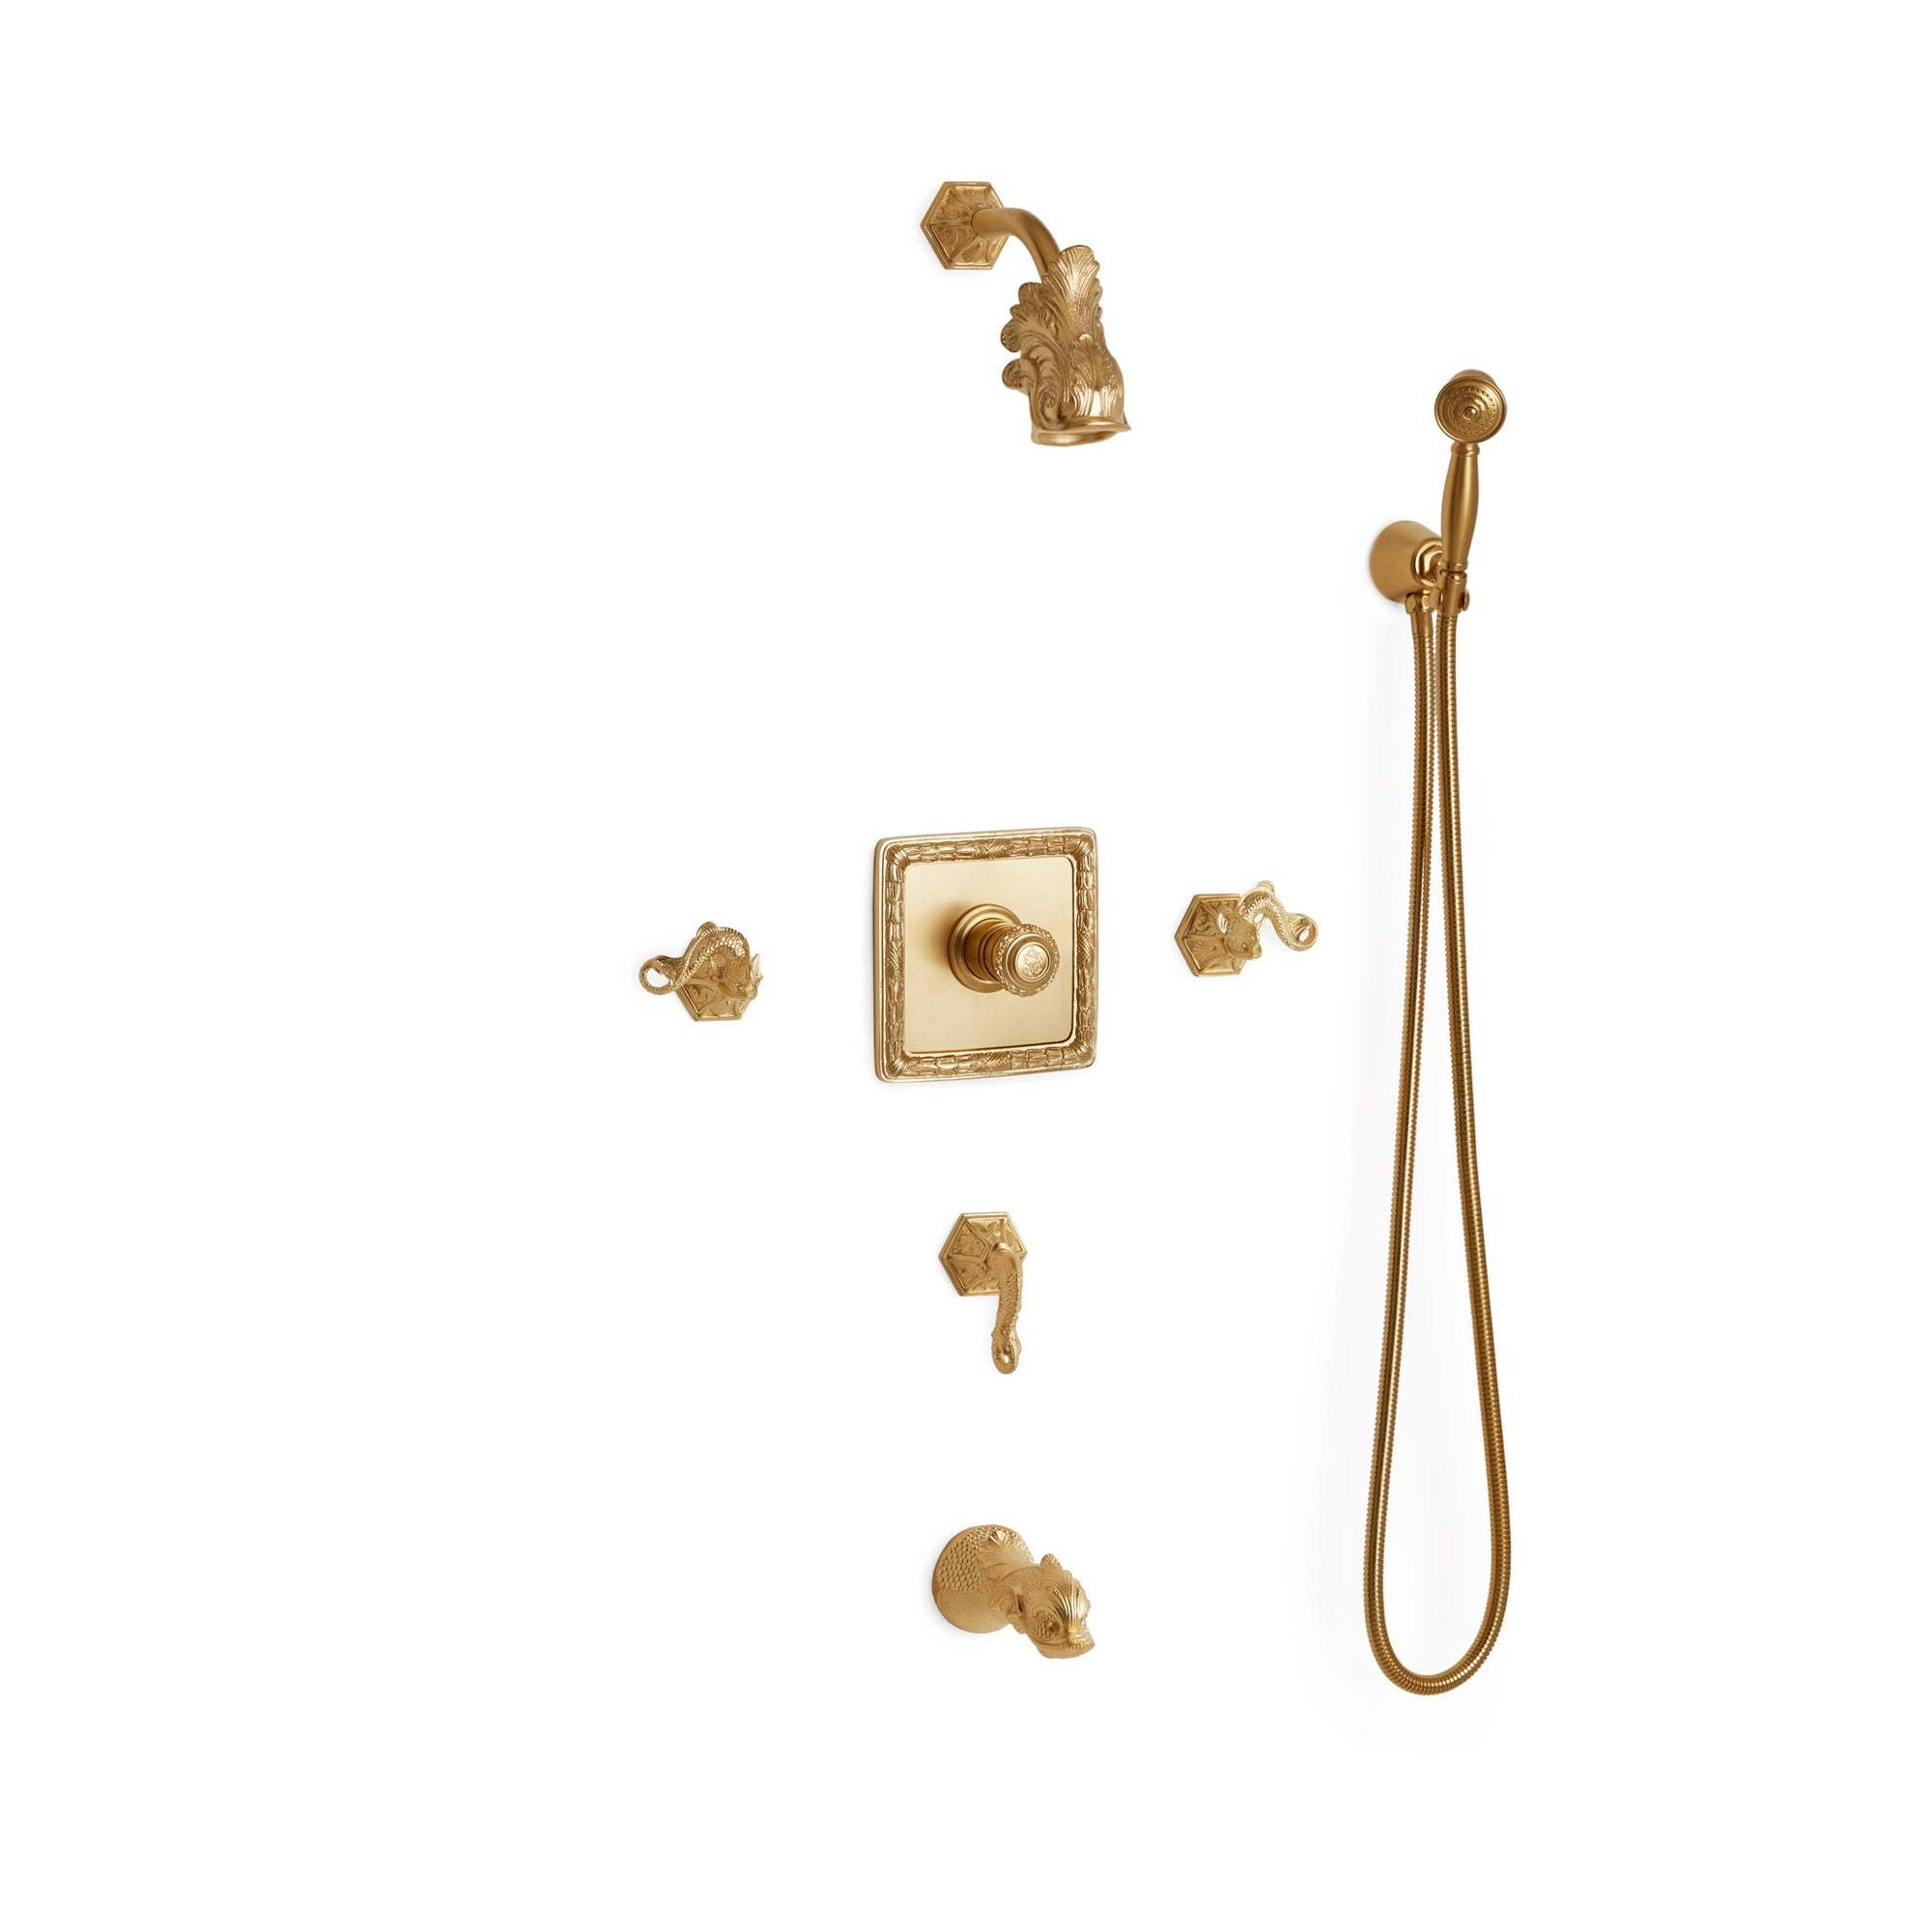 Sherle Wagner International Dolphin High Flow Thermostatic Shower and Tub System in Gold Plate metal finish